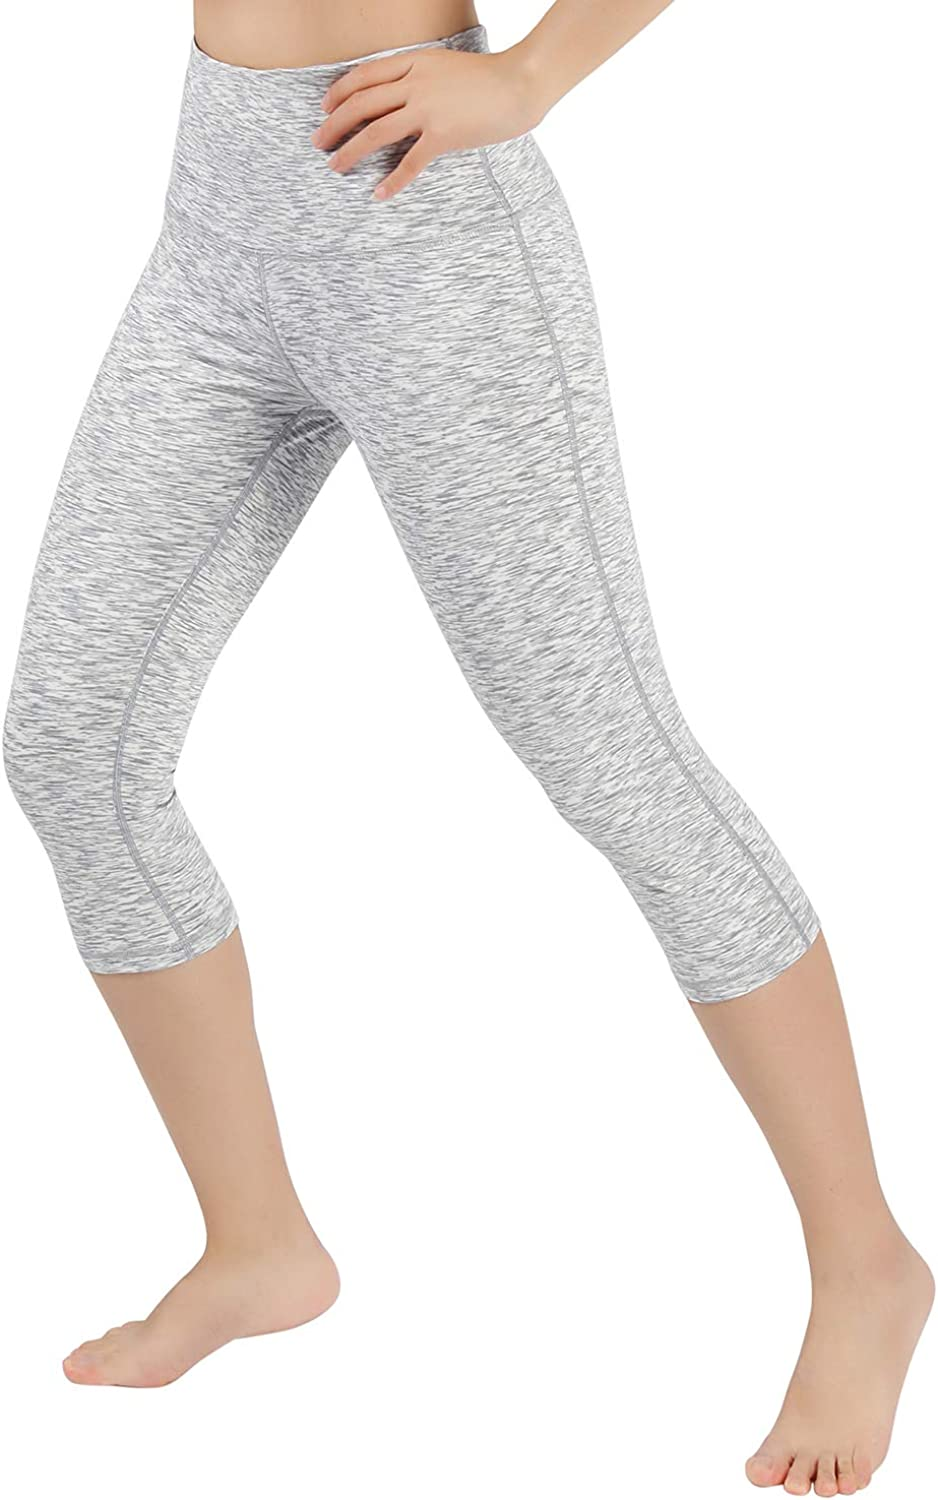 ODODOS Womens 19// 23 //27 High Waist Tummy Control Workout Yoga Running Compression Exercise Leggings with Inner Pockets